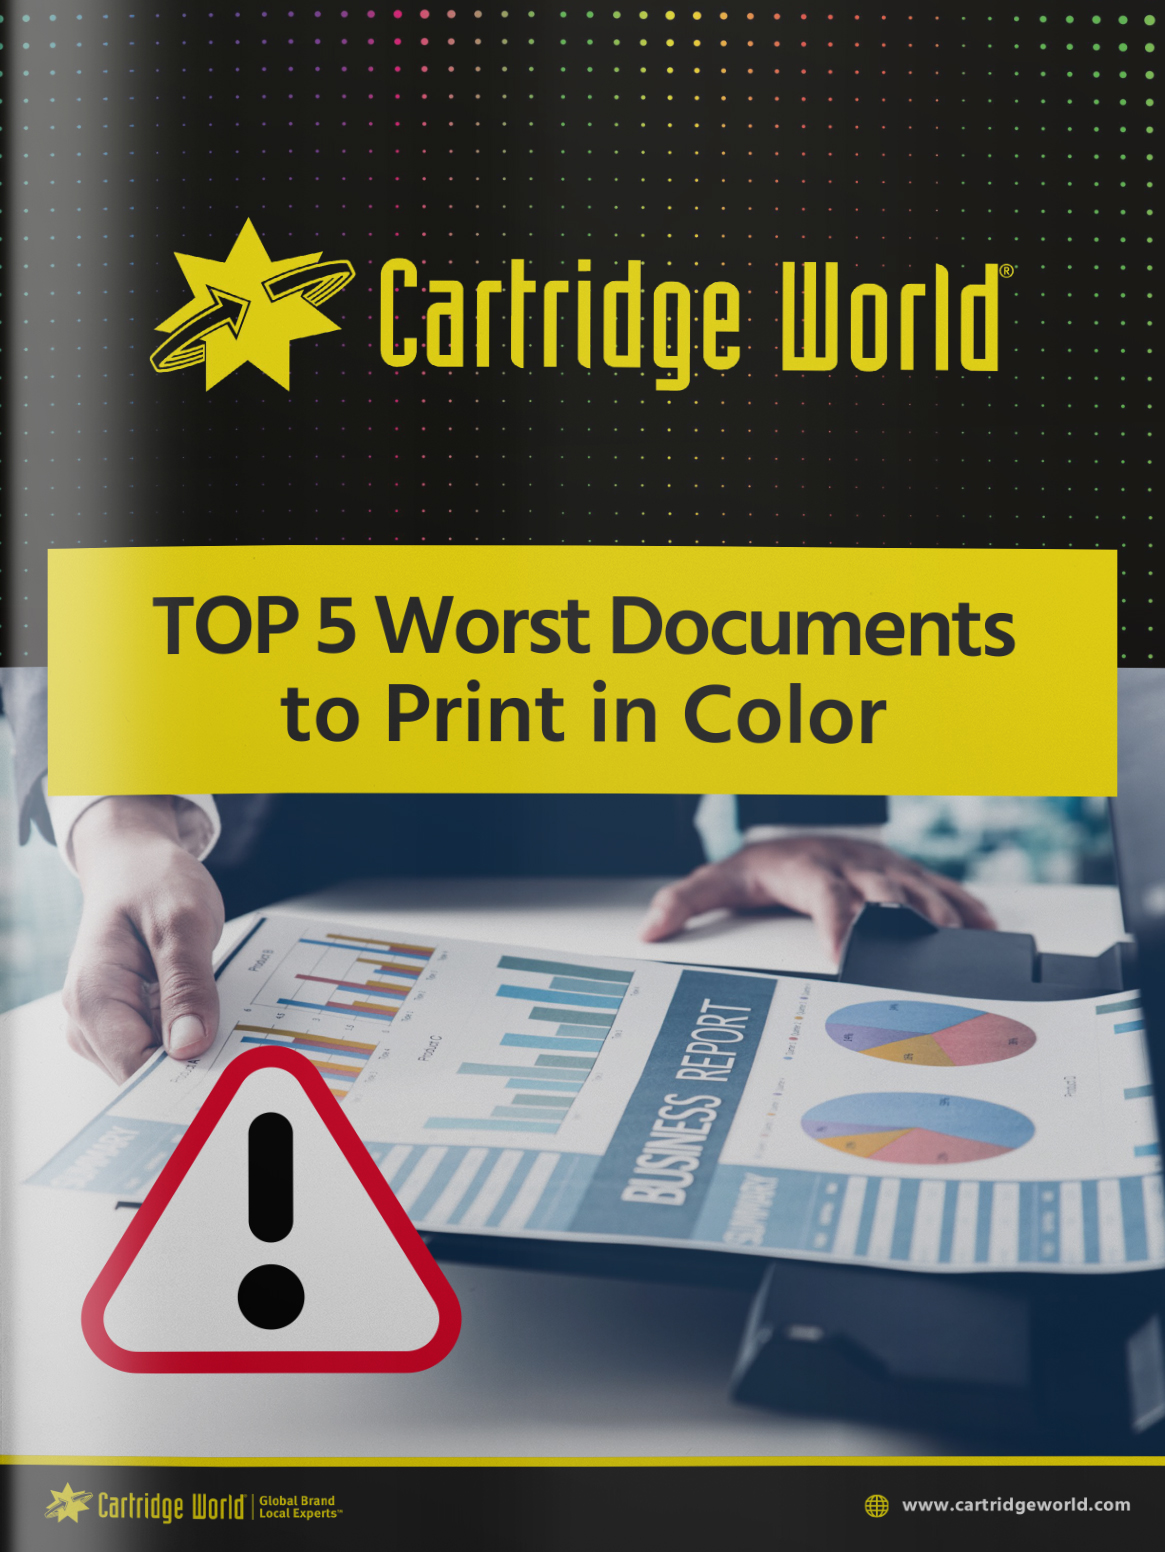 Worst Documents to Print in Color